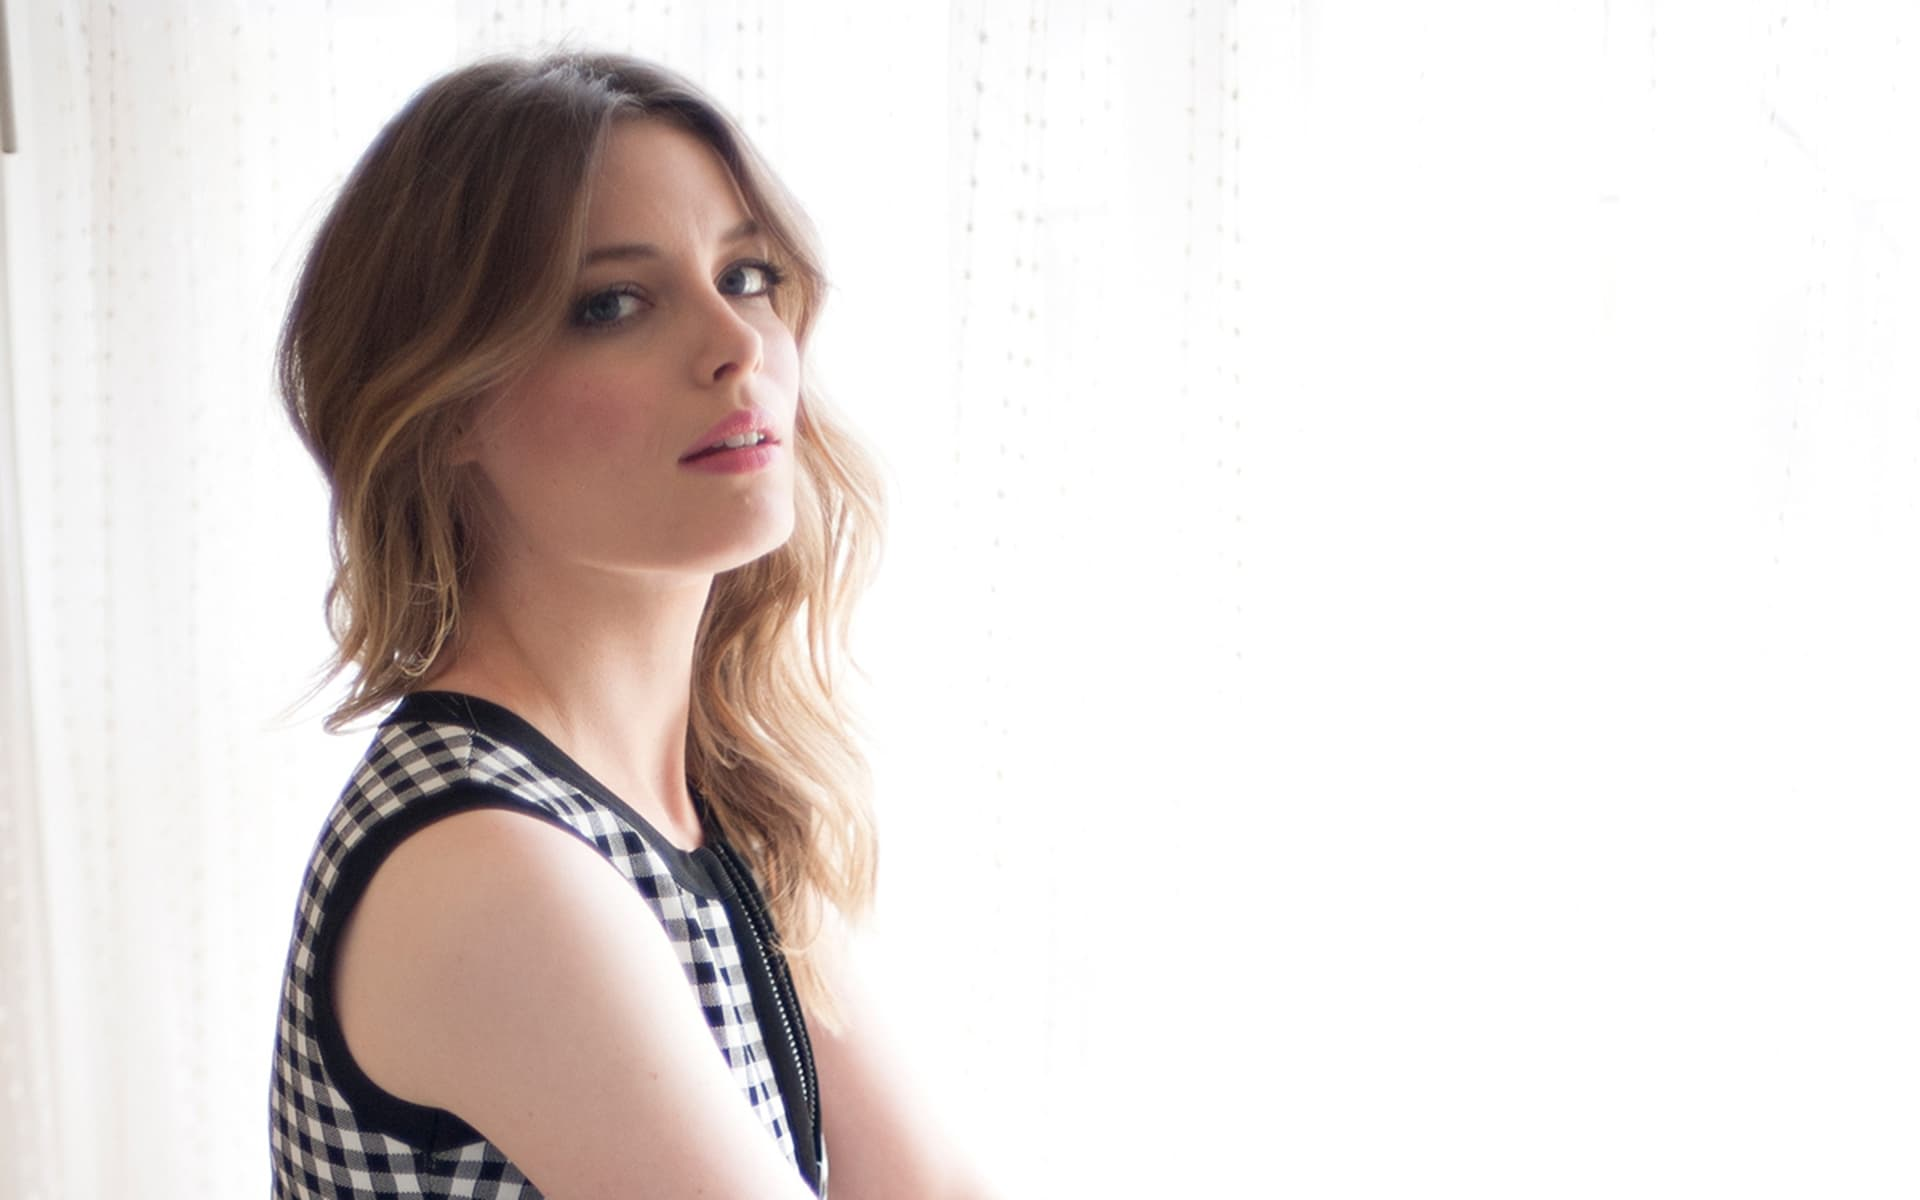 16 gillian jacobs wallpapers high quality resolution download